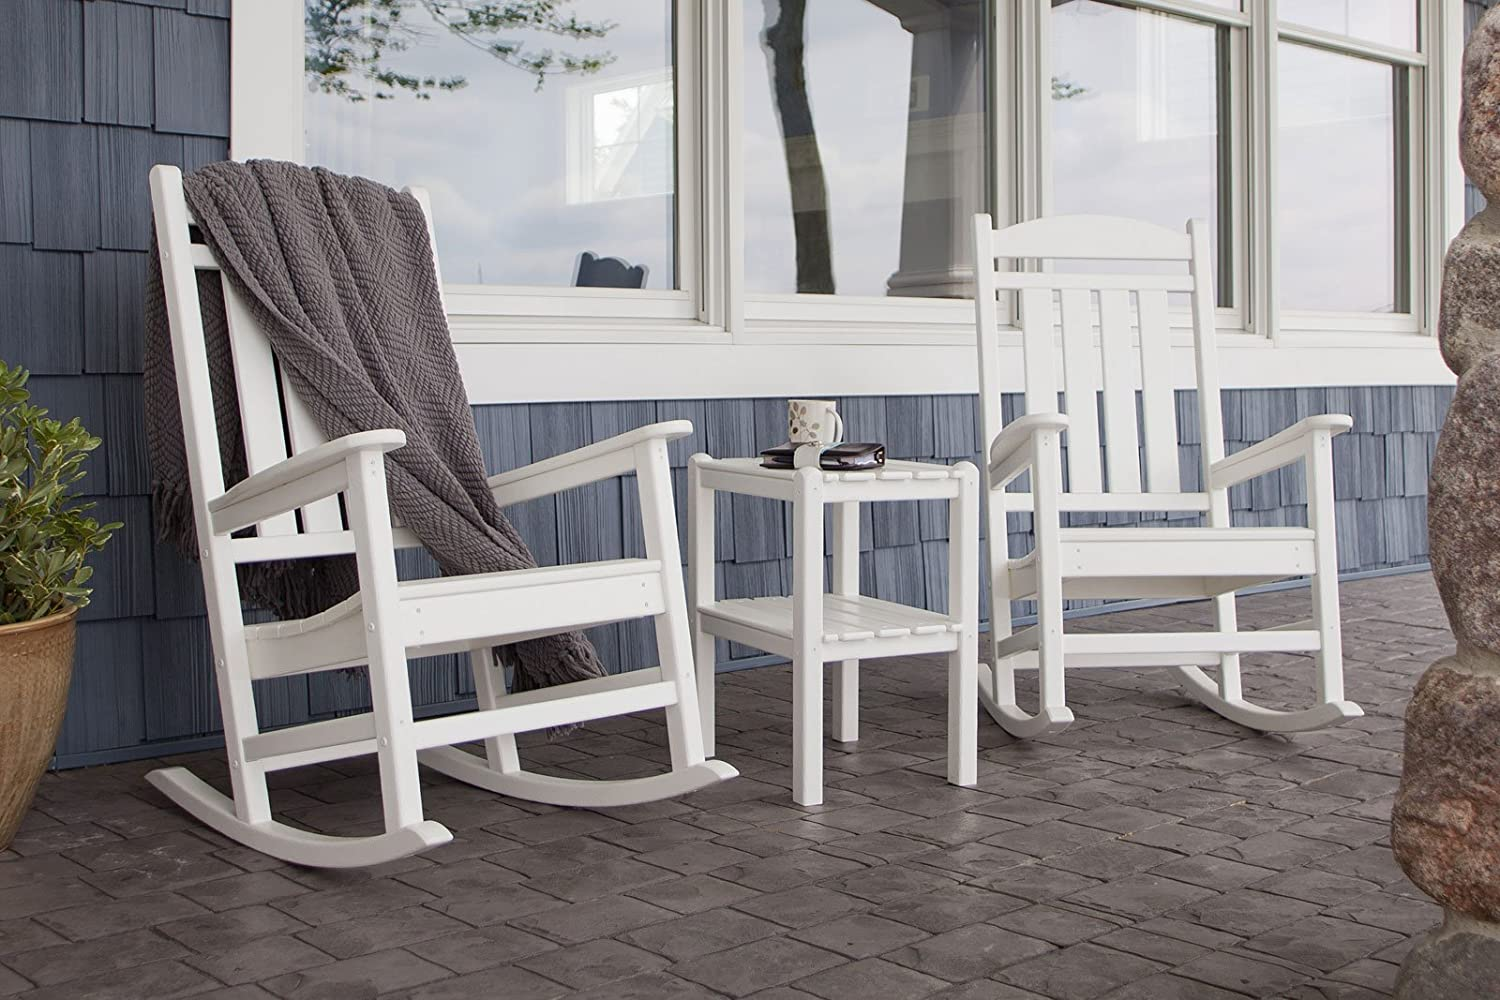 Charmant Amazon.com : POLYWOOD PWS138 1 WH Presidential 3 Piece Rocker Chair Set,  White : Patio Rocking Chairs : Garden U0026 Outdoor